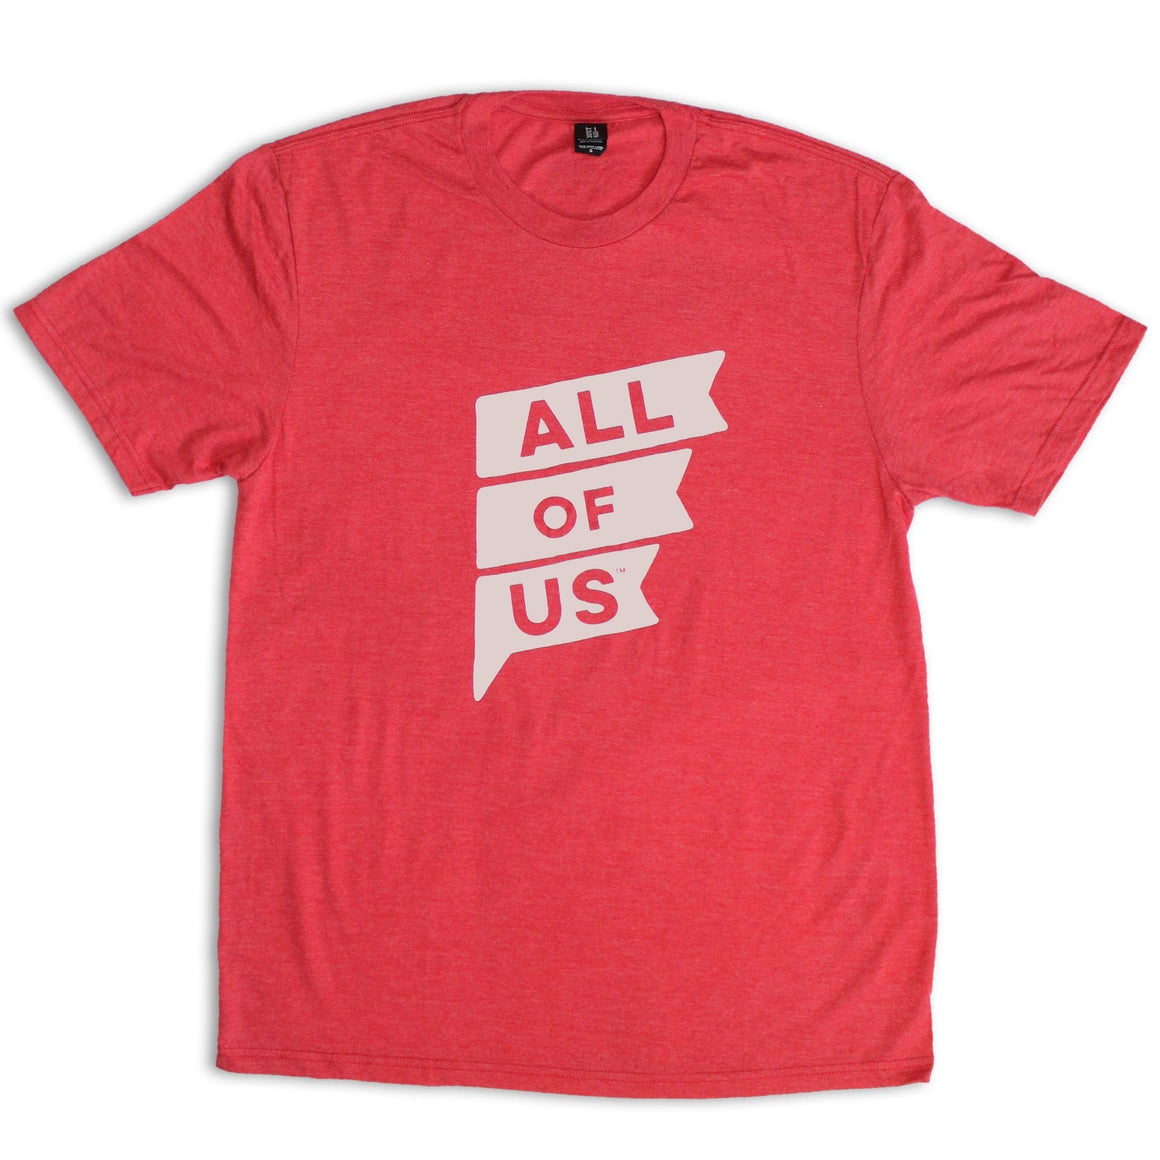 Men's Red Frost Crew Tee with Al